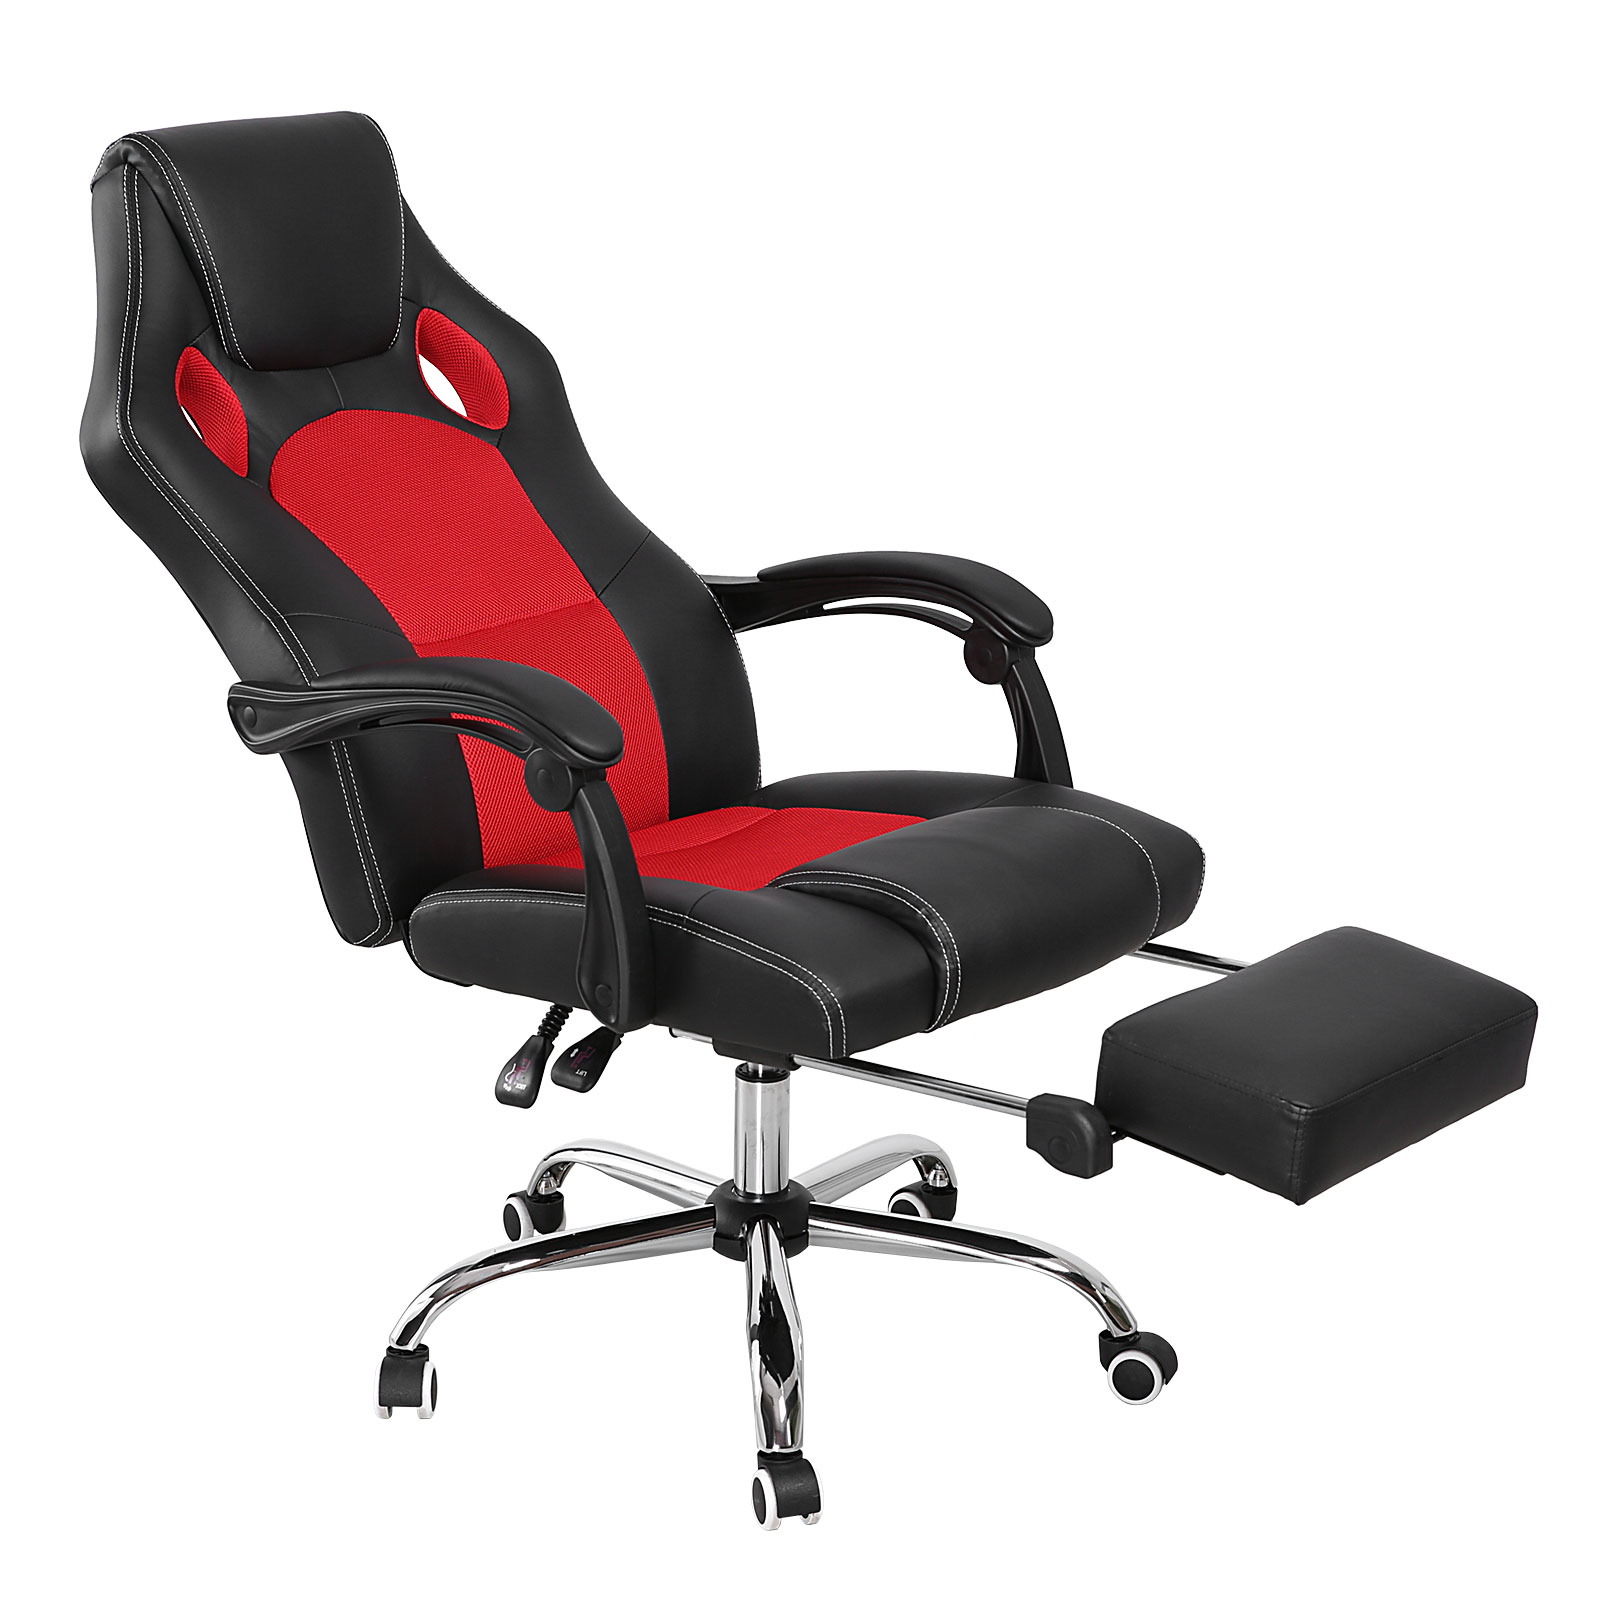 racing office chairs chair workout recliner relax gaming executive